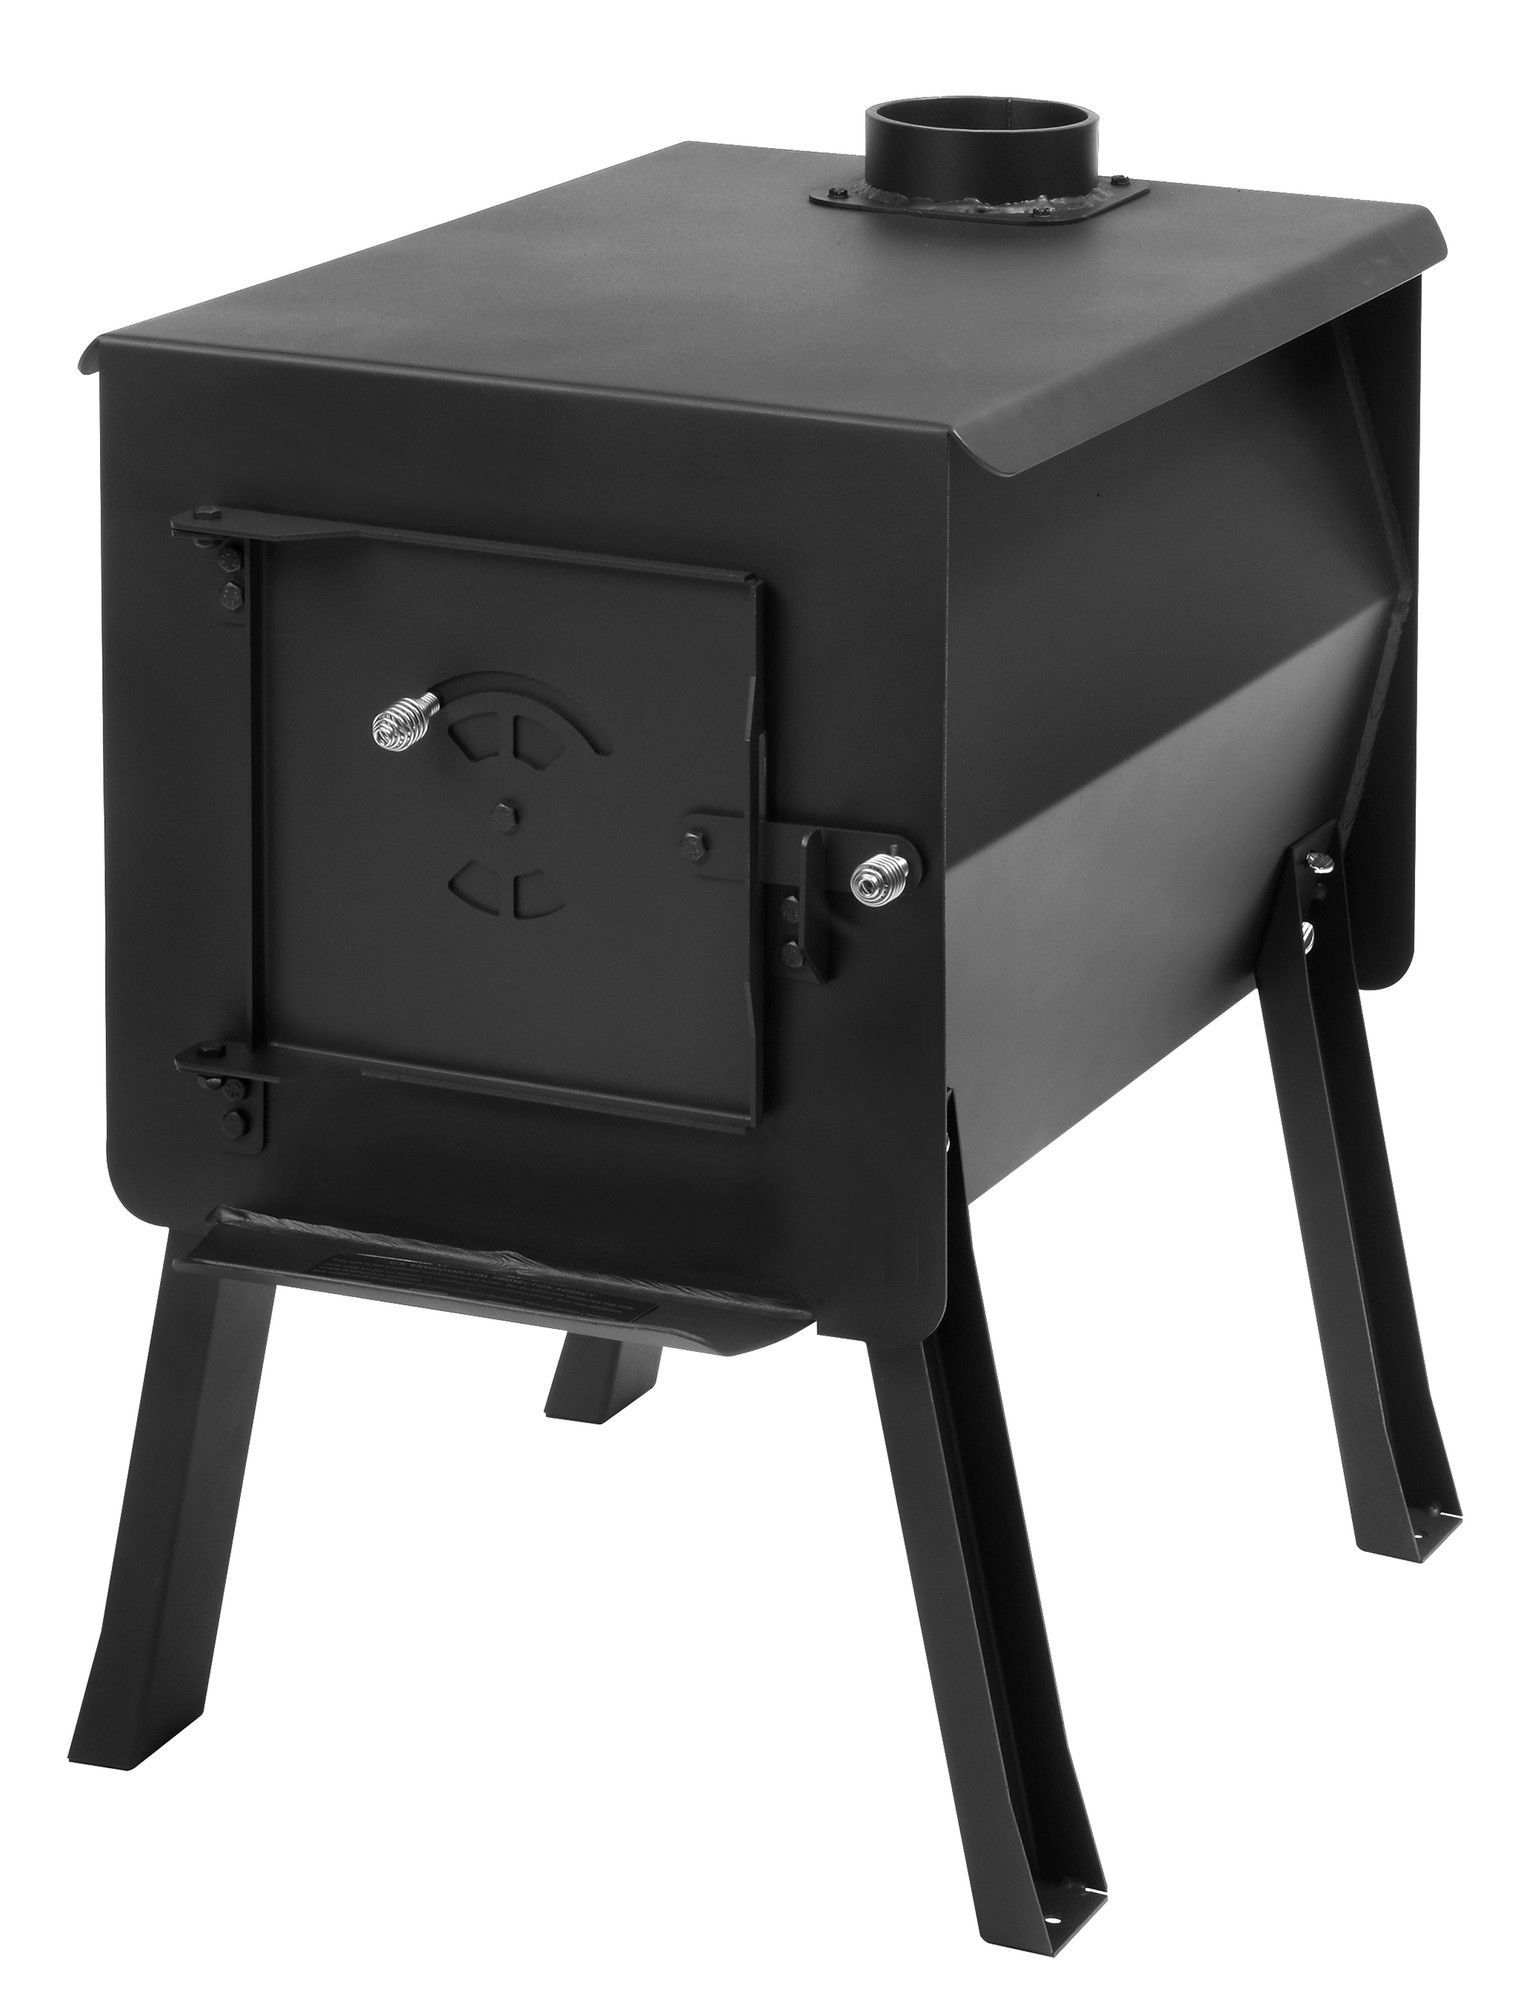 Grizzly Portable Camp Wood Stove | Outdoor stove, Portable ...